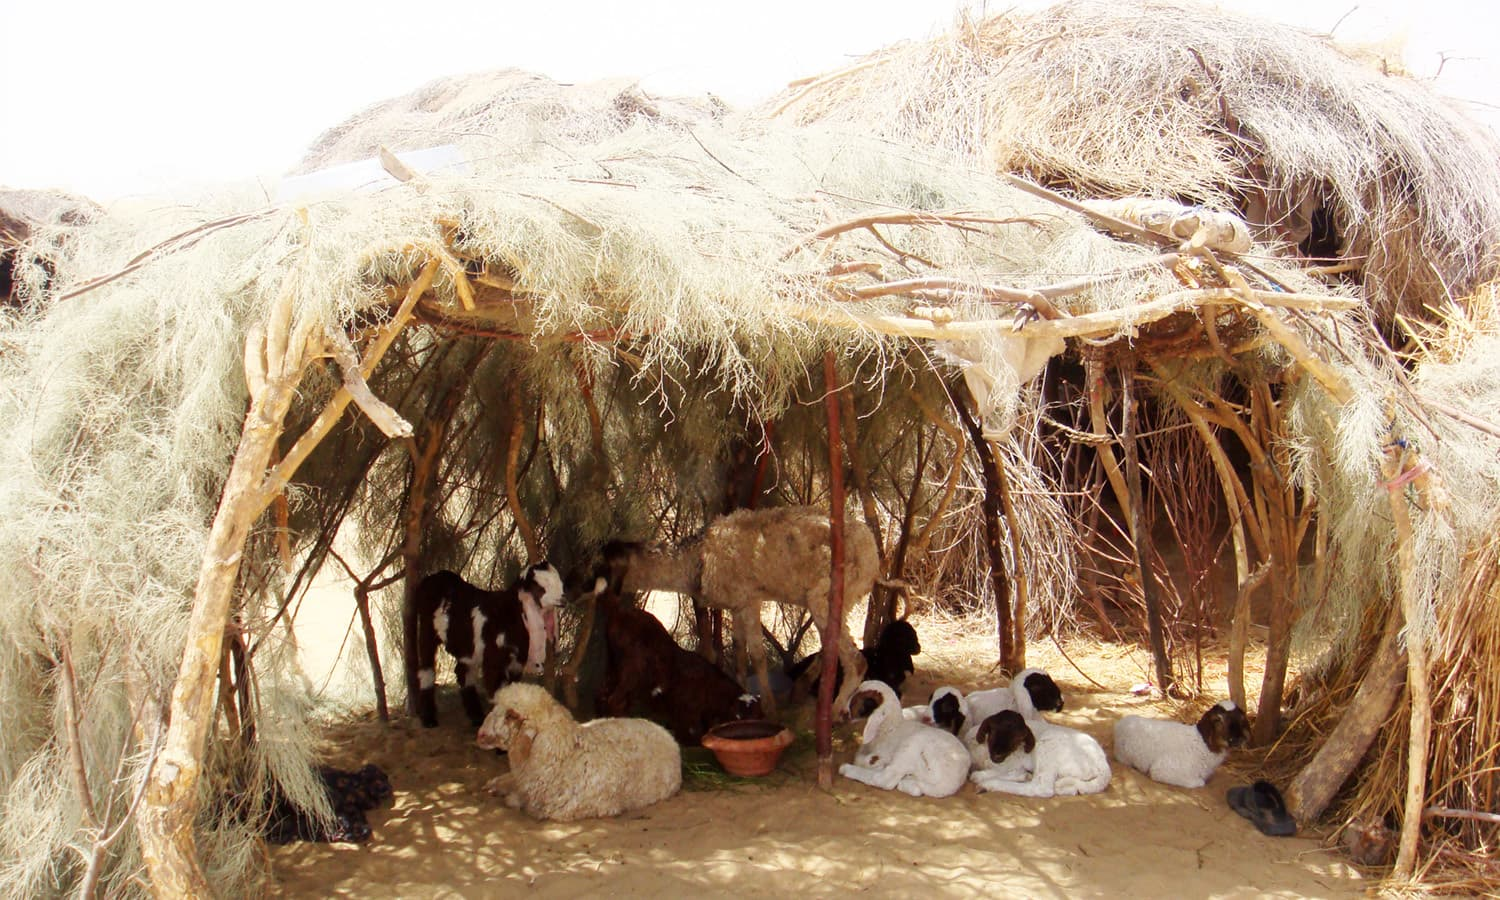 Cattle-rearing is often the sole source of livelihood for people in Cholistan.